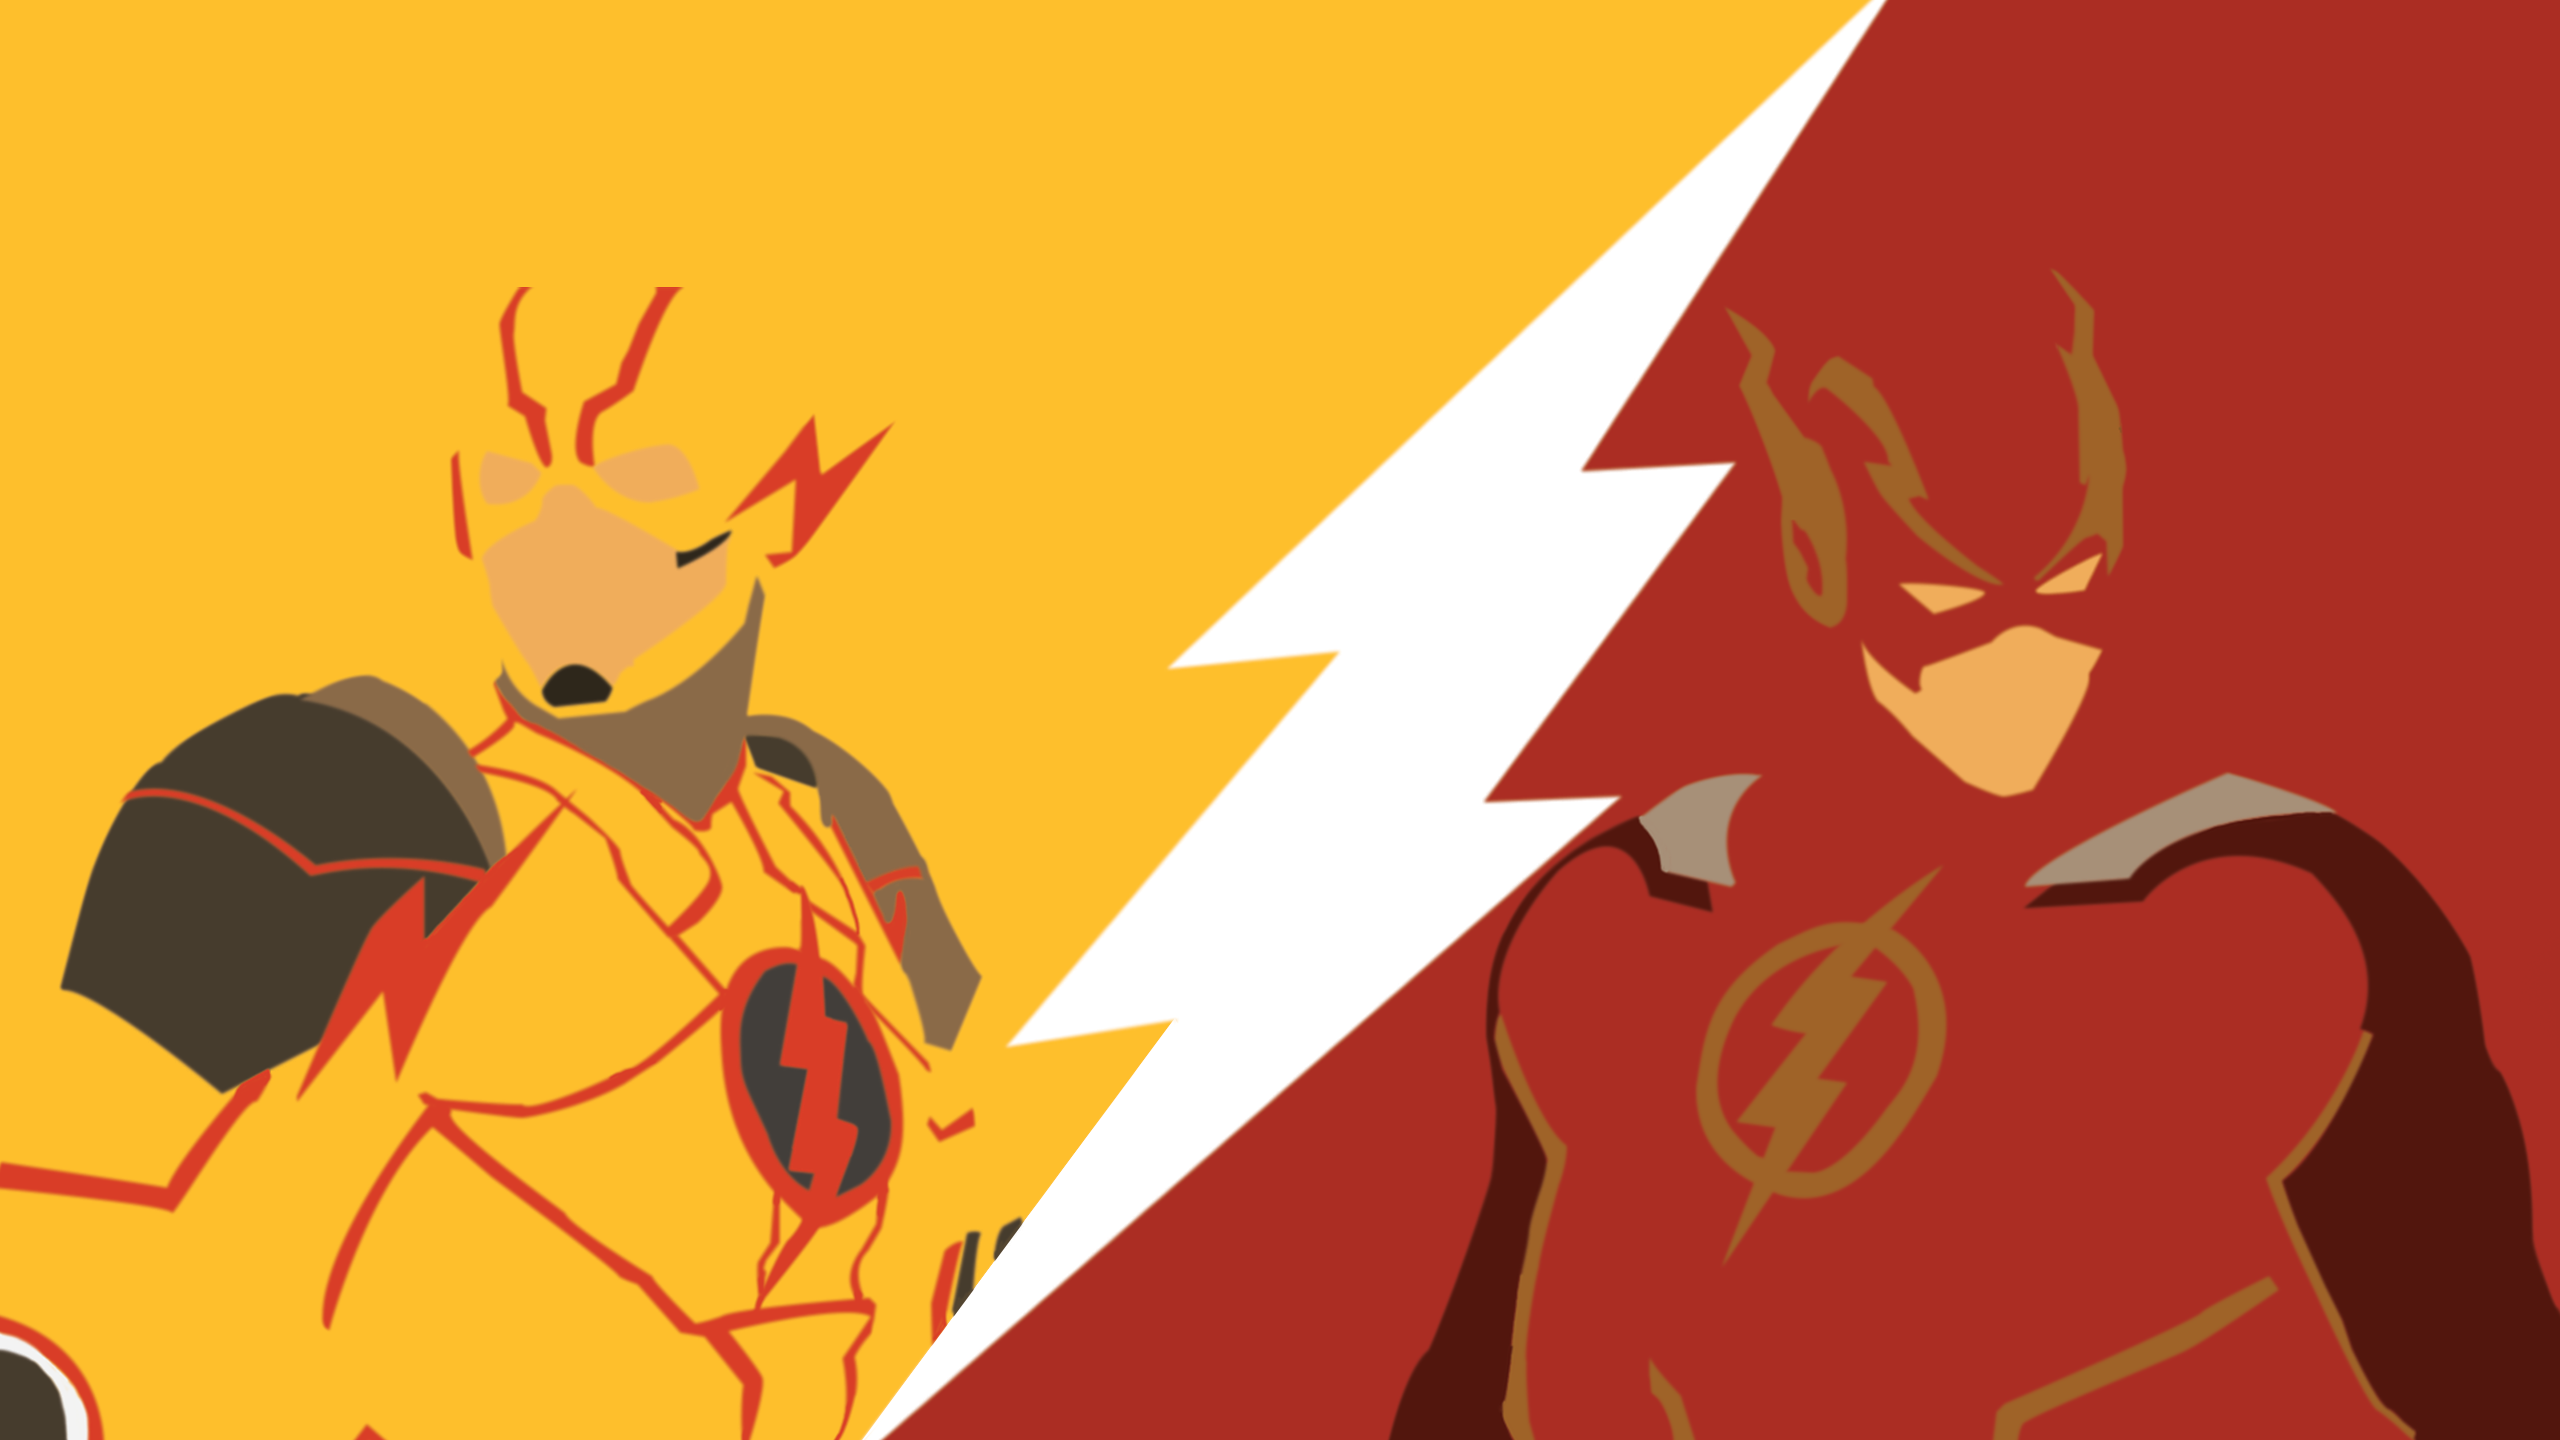 Flash And Reverse Flash 112511 Hd Wallpaper Backgrounds